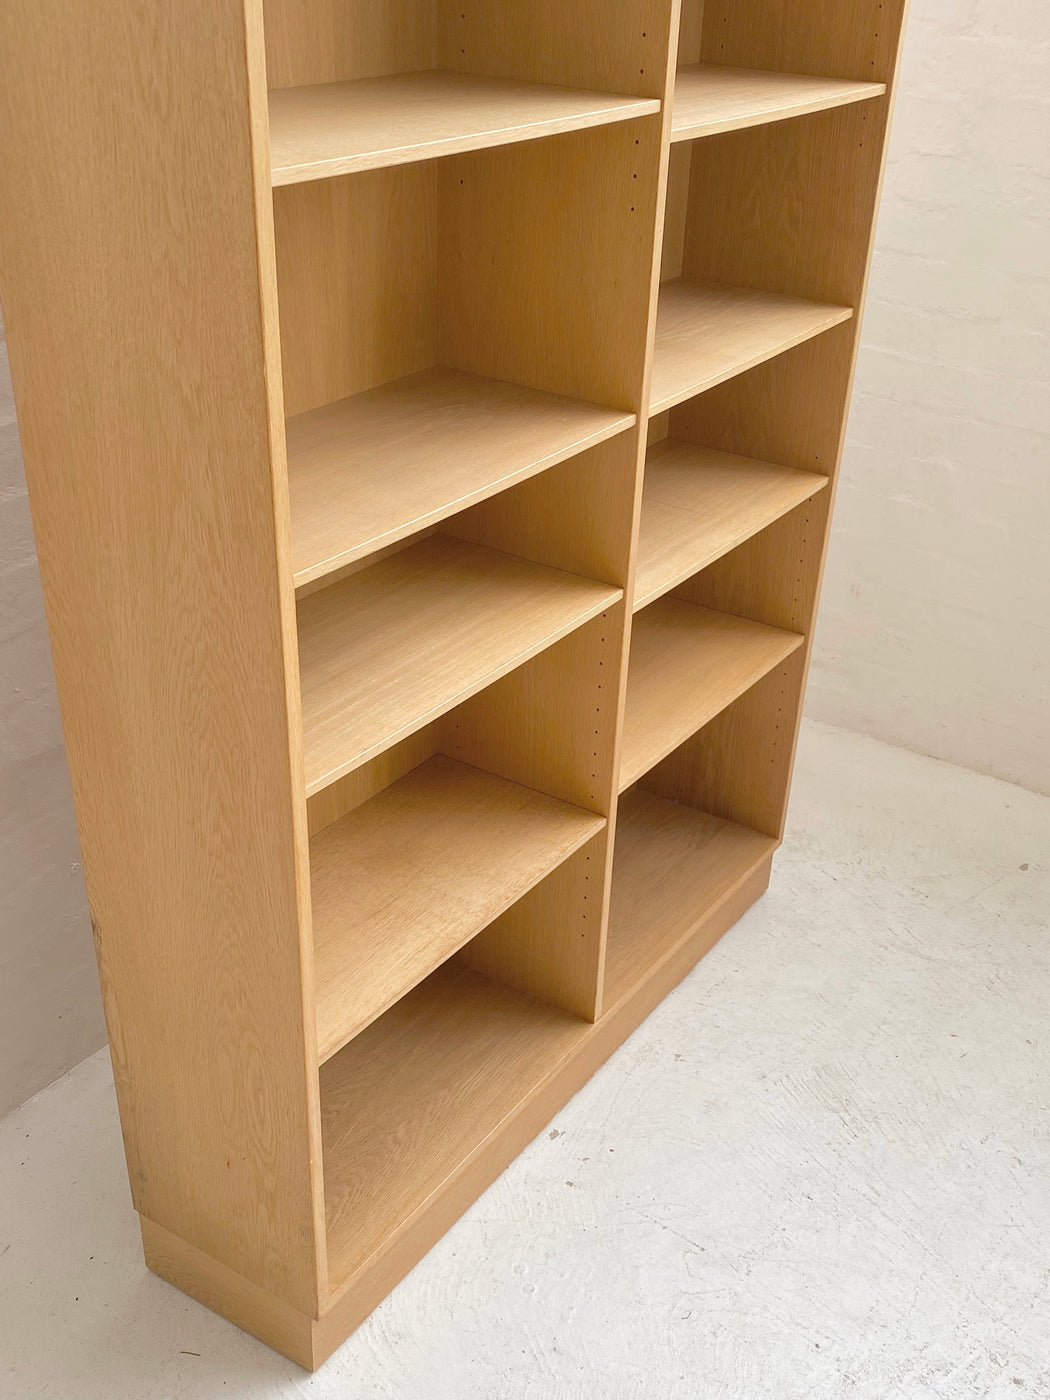 Omann Jun 'Model 12' Bookshelves